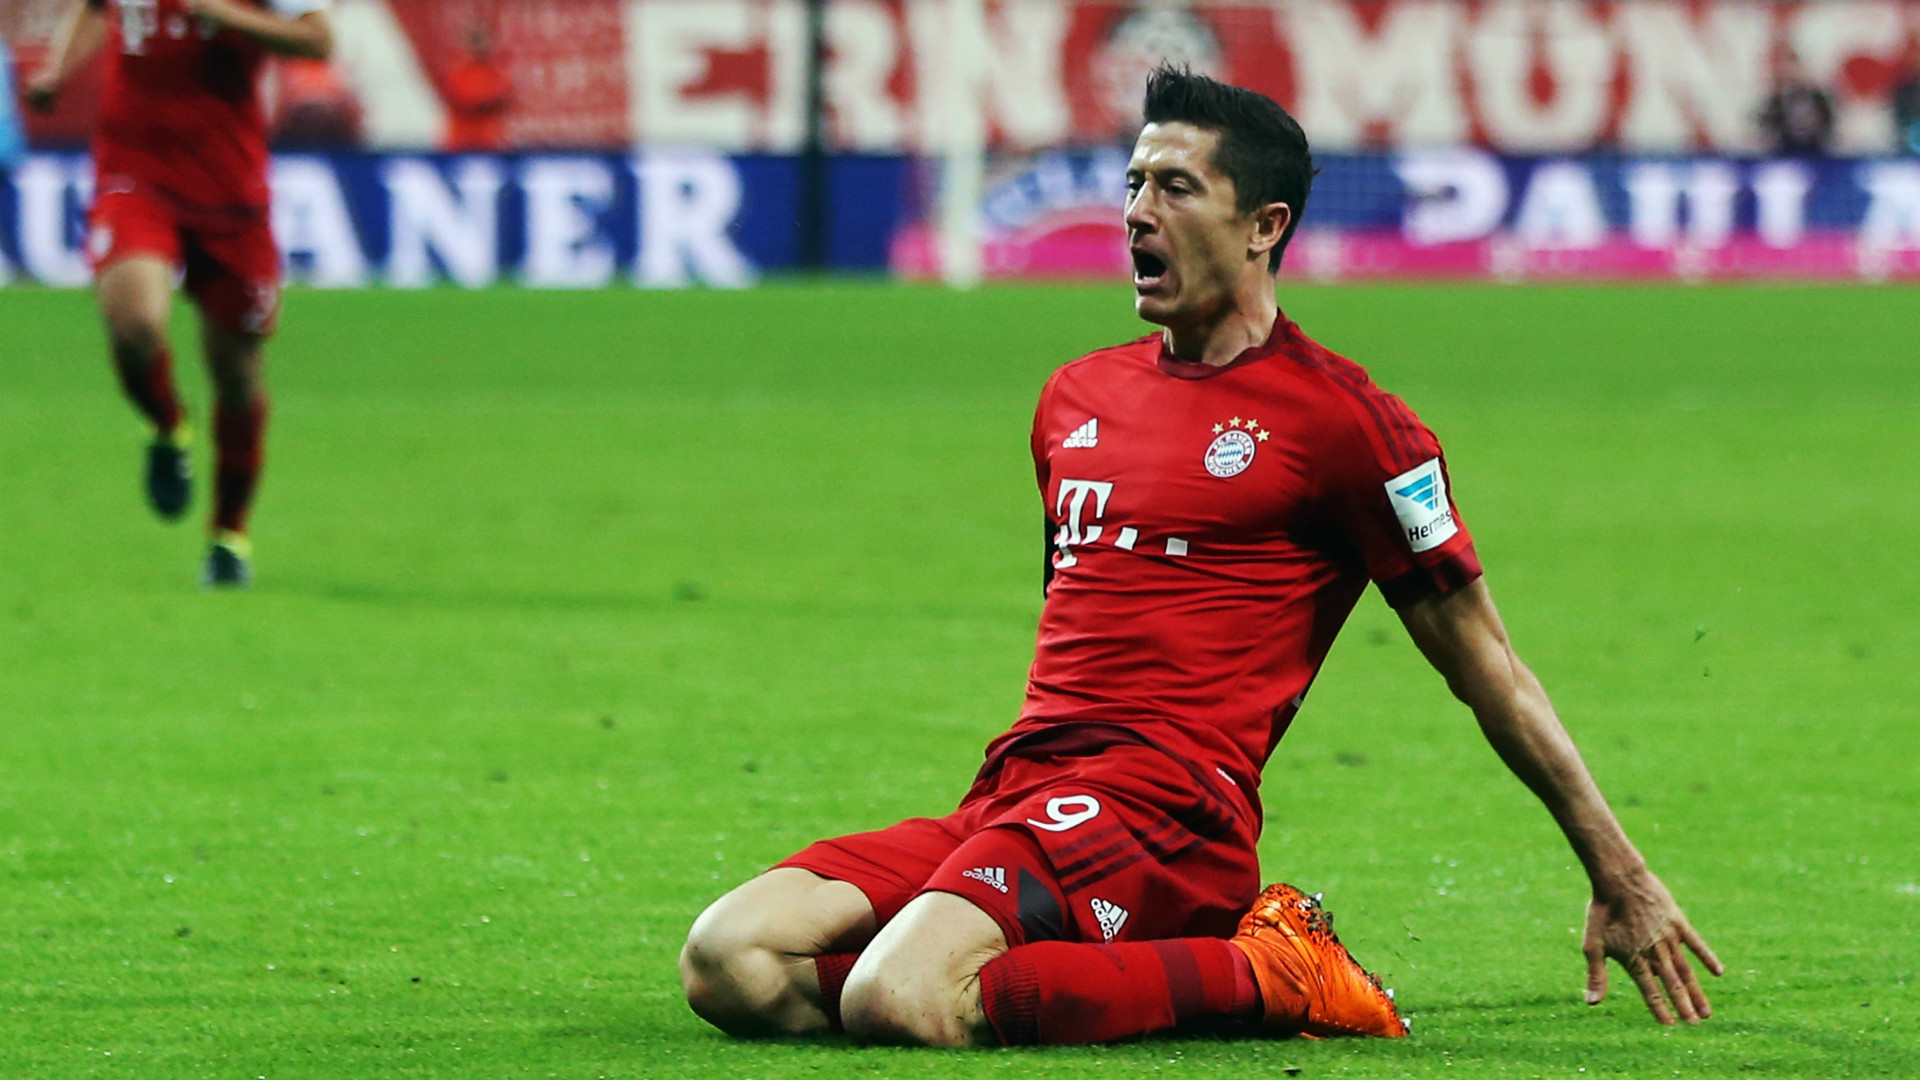 Main reason why Lewandowski does not want to play for Man United